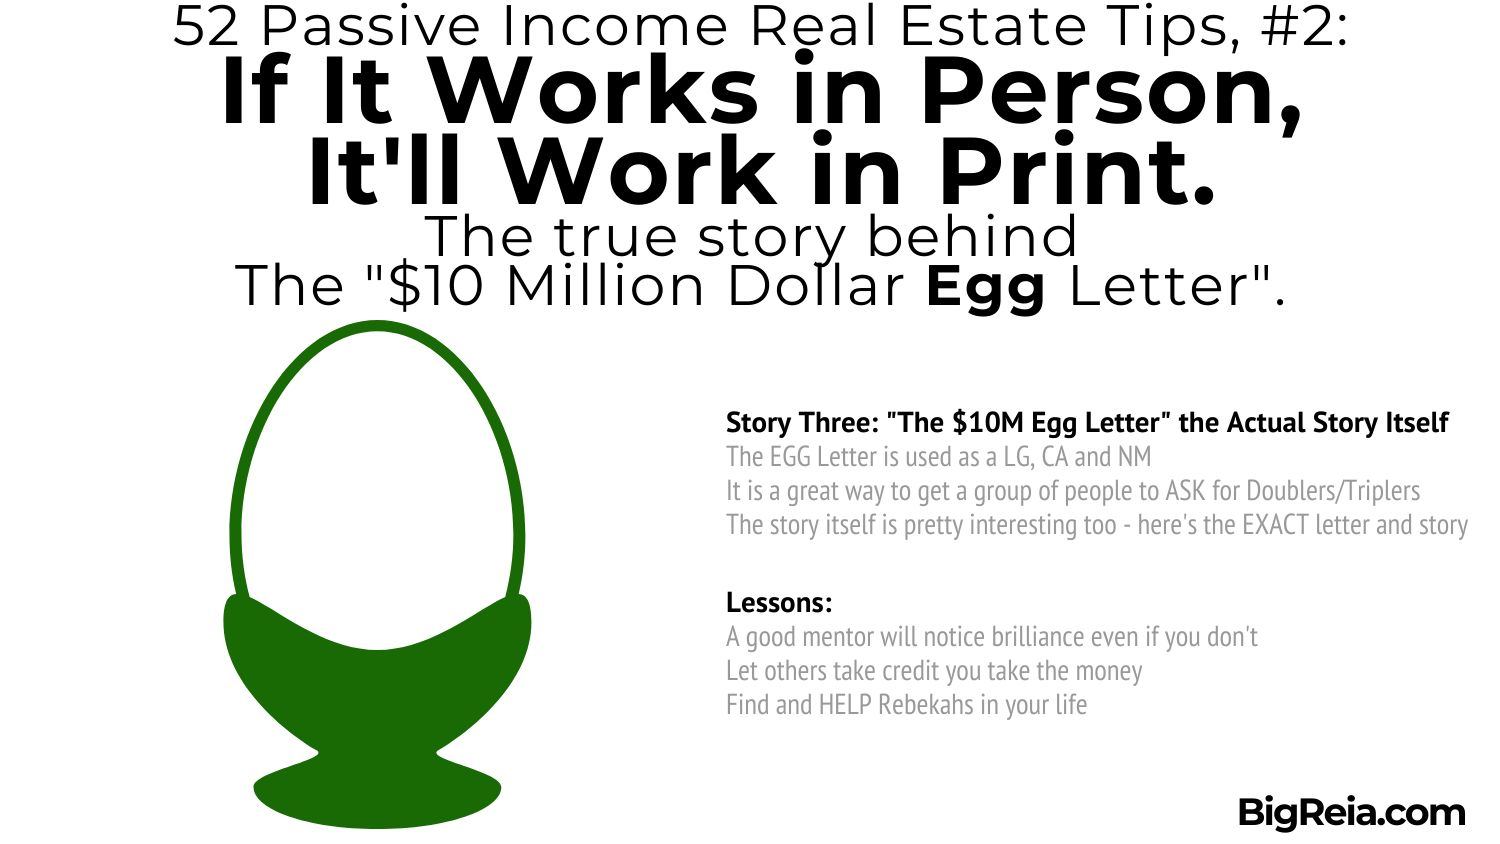 """The story behind how we use the """"Egg Letter"""" and the actual letter itself"""